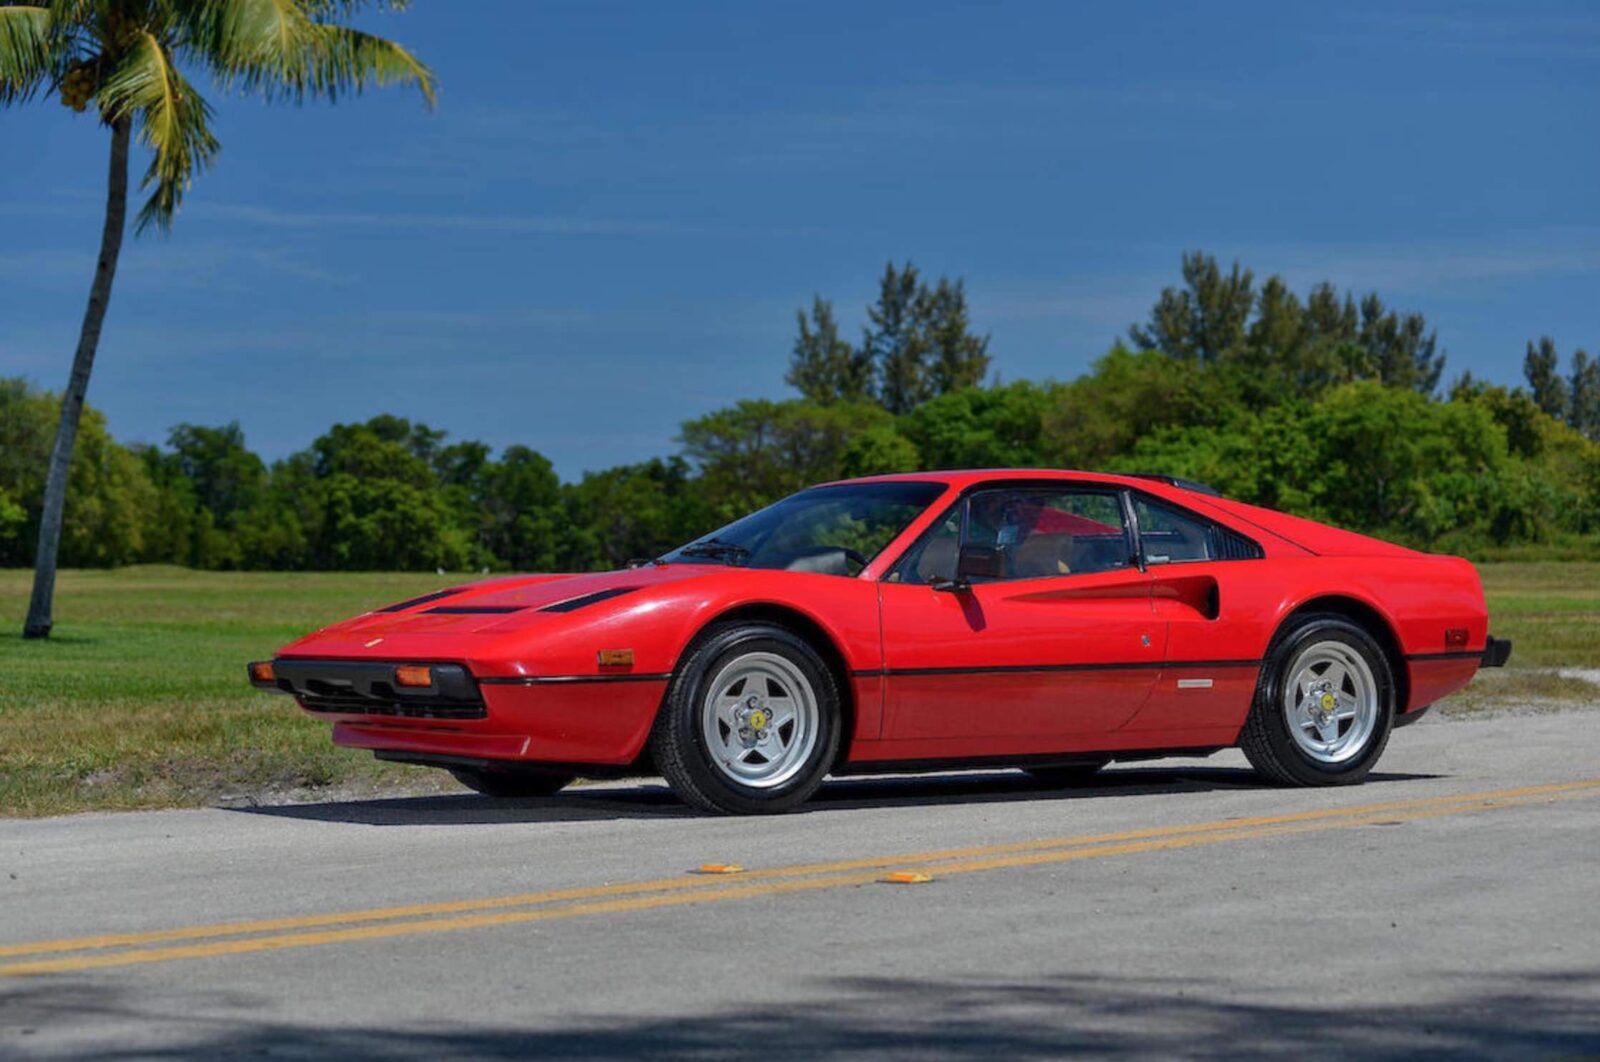 ferrari four with Ferrari 308 Gtb Quattrovalvole on Automobile Vehicle Transportation 1078406 together with Iso Grifo Iso Fidia Iso Rivolta For Sale Around The World together with E3 83 95 E3 82 A7 E3 83 A9 E3 83 BC E3 83 AA E3 83 BB E3 83 95 E3 82 A9 E3 83 BC also Ford Fusion European 2002 moreover Leclerc Gets Sauber Fp1 Outings.